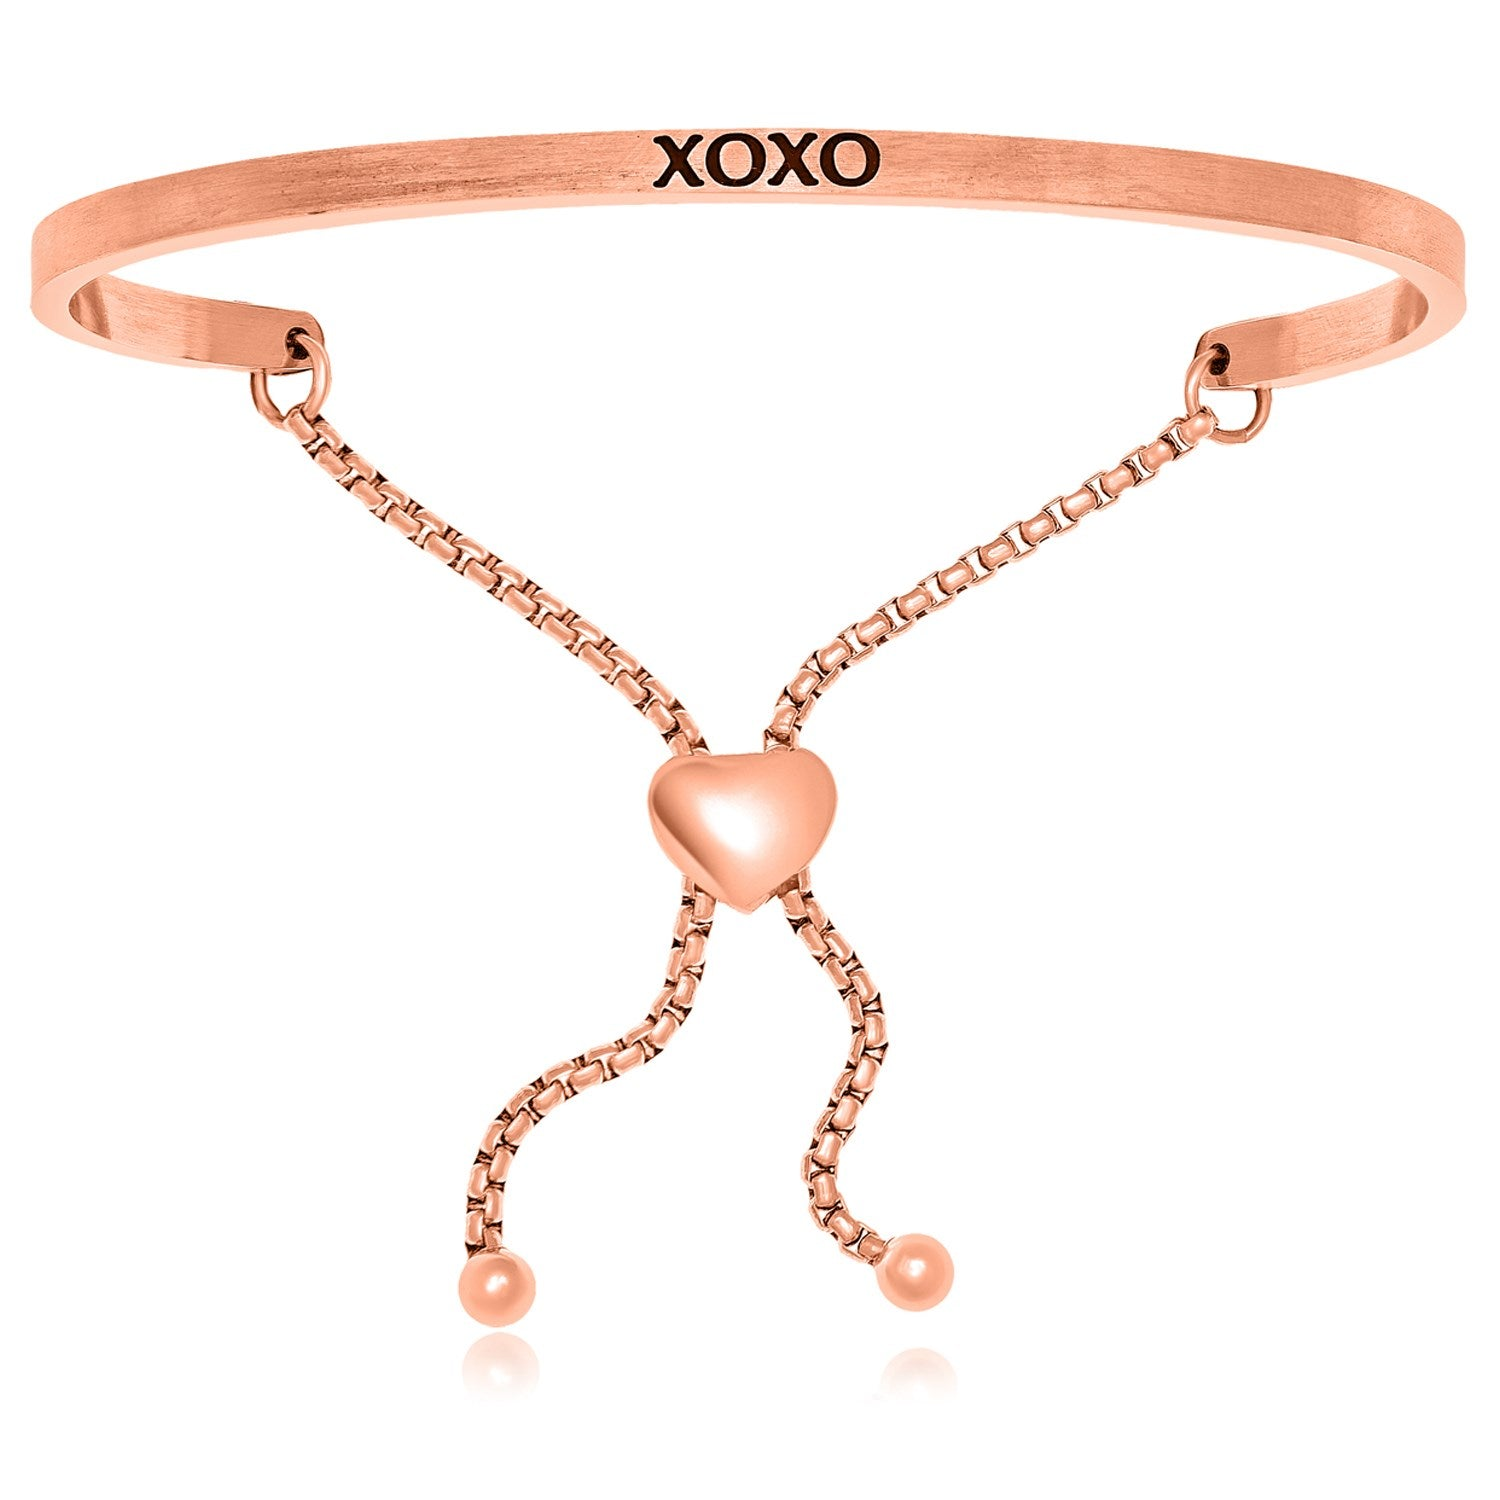 Pink Stainless Steel XOXO Adjustable Bracelet